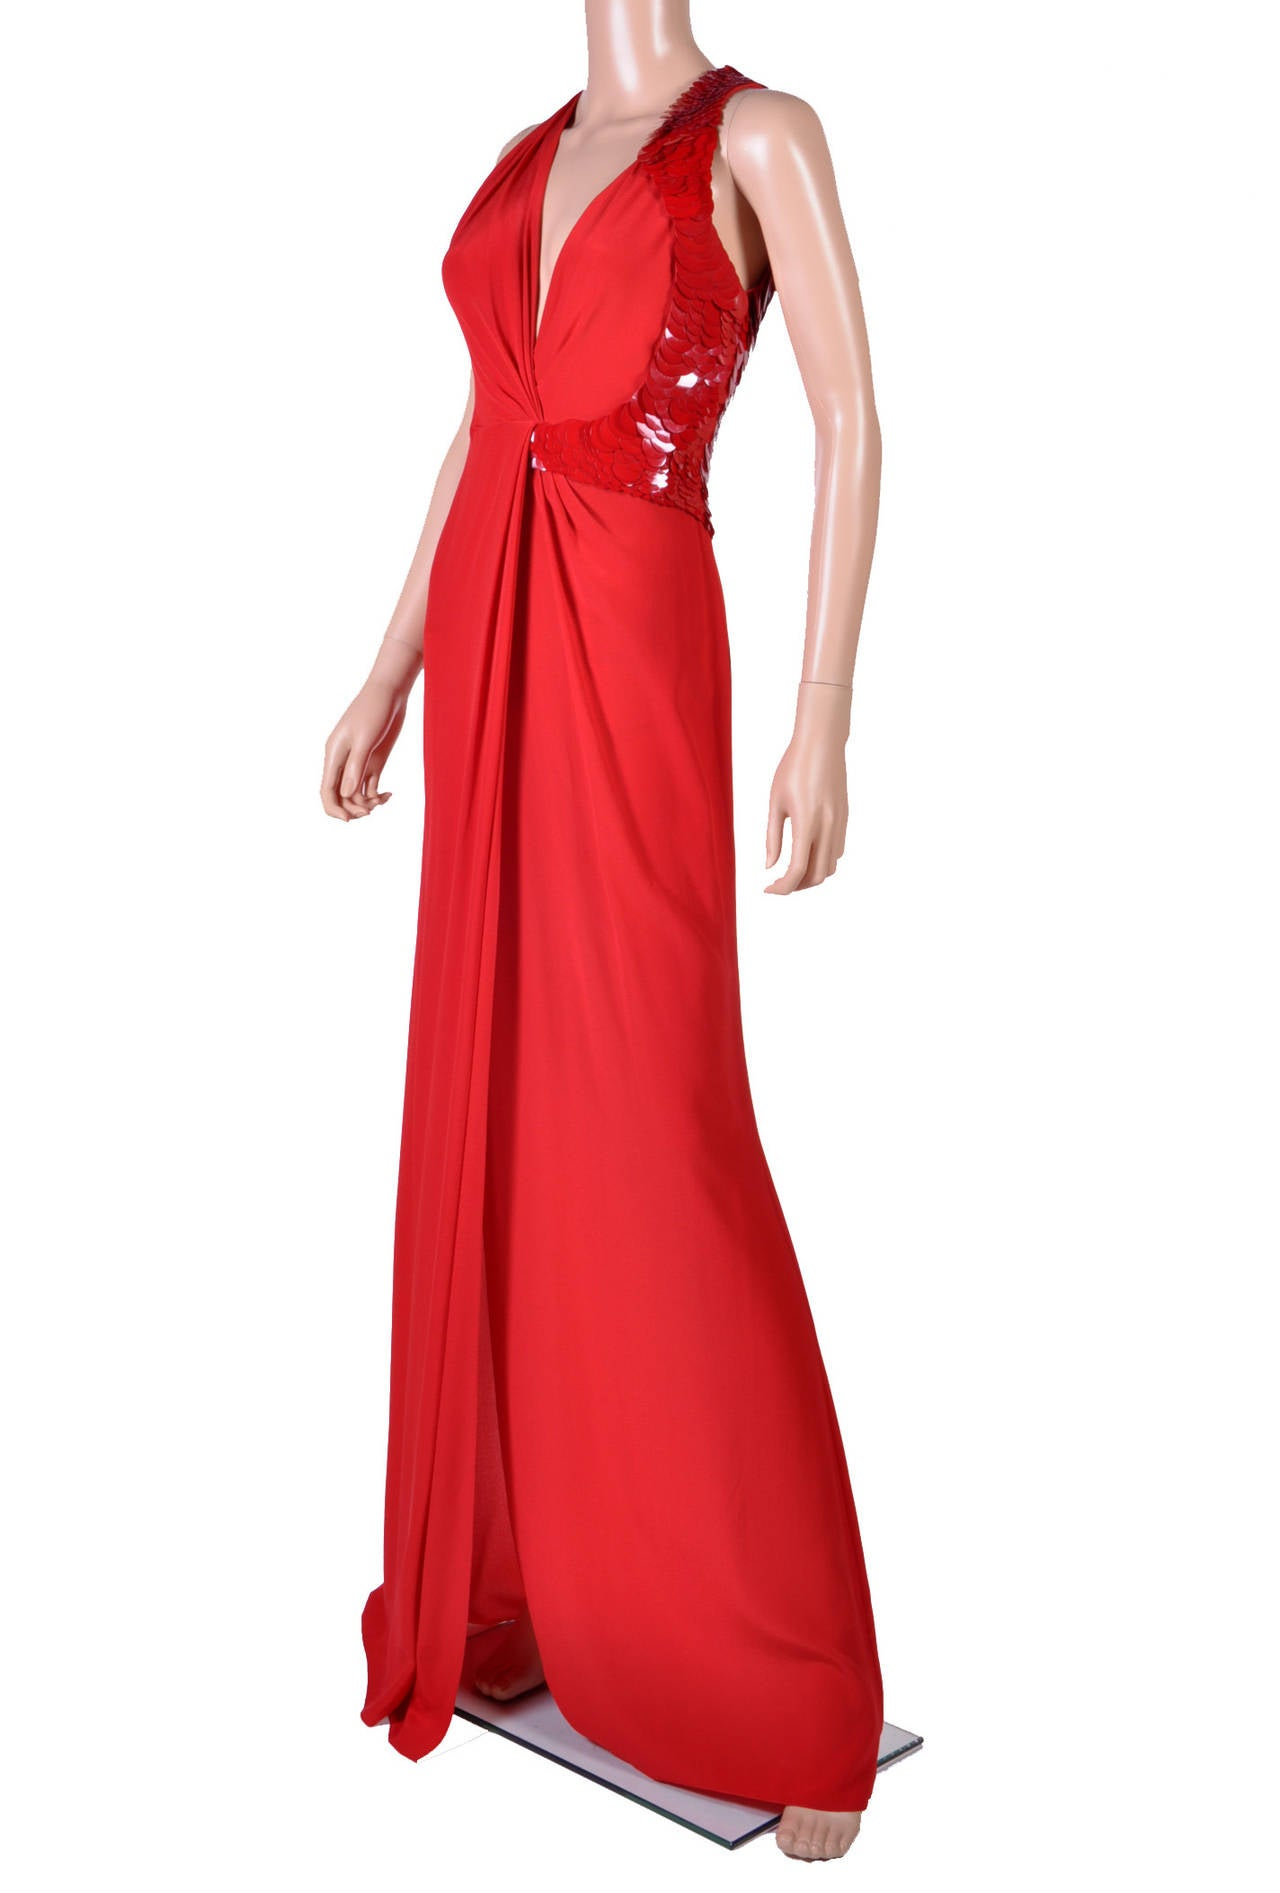 VERSACE Embellished Red Silk Gown on Emmy's list of the most iconic! 5